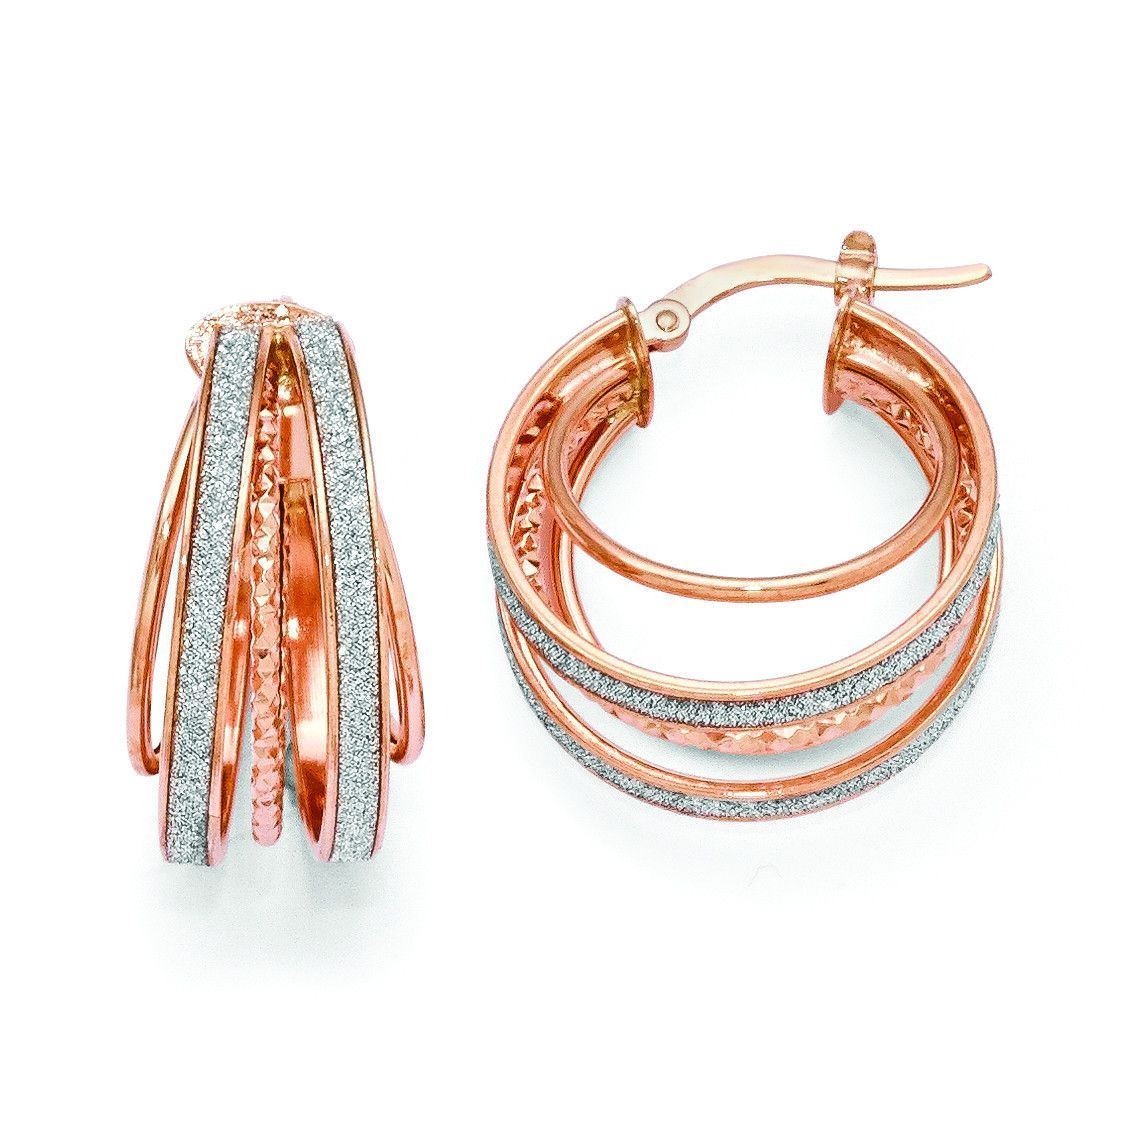 Leslies Real 14kt Yellow Gold Polished Glimmer Infused Hoop Earrings